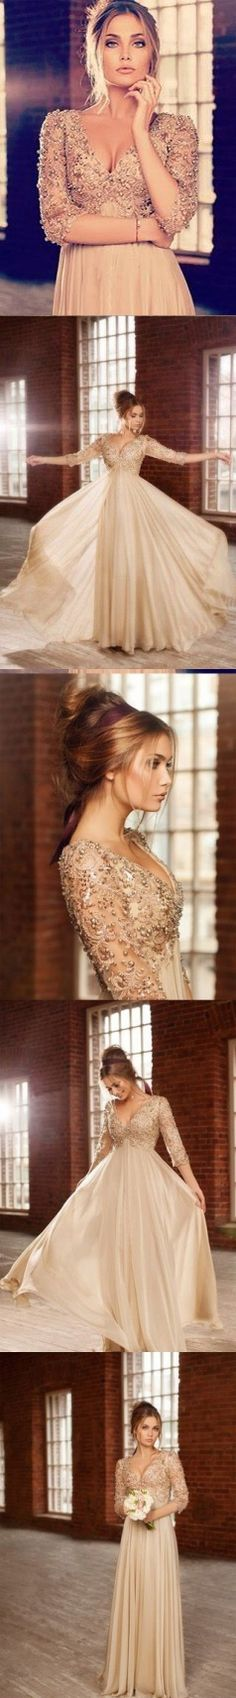 prom dresses long,beautiful prom dresses,prom dresses flowy,prom dresses 2018,gorgeous prom dresses,prom dresses 2017,prom dresses unique,prom dresses elegant,prom dresses largos,prom dresses graduacion,prom dresses classy,prom dresses modest,prom dresses simple,prom dresses with sleeves,prom dresses long with sleeves,prom dresses a line,prom dresses champagne #annapromdress #prom #promdress #evening #eveningdress #dance #longdress #longpromdress #fashion #style #dress